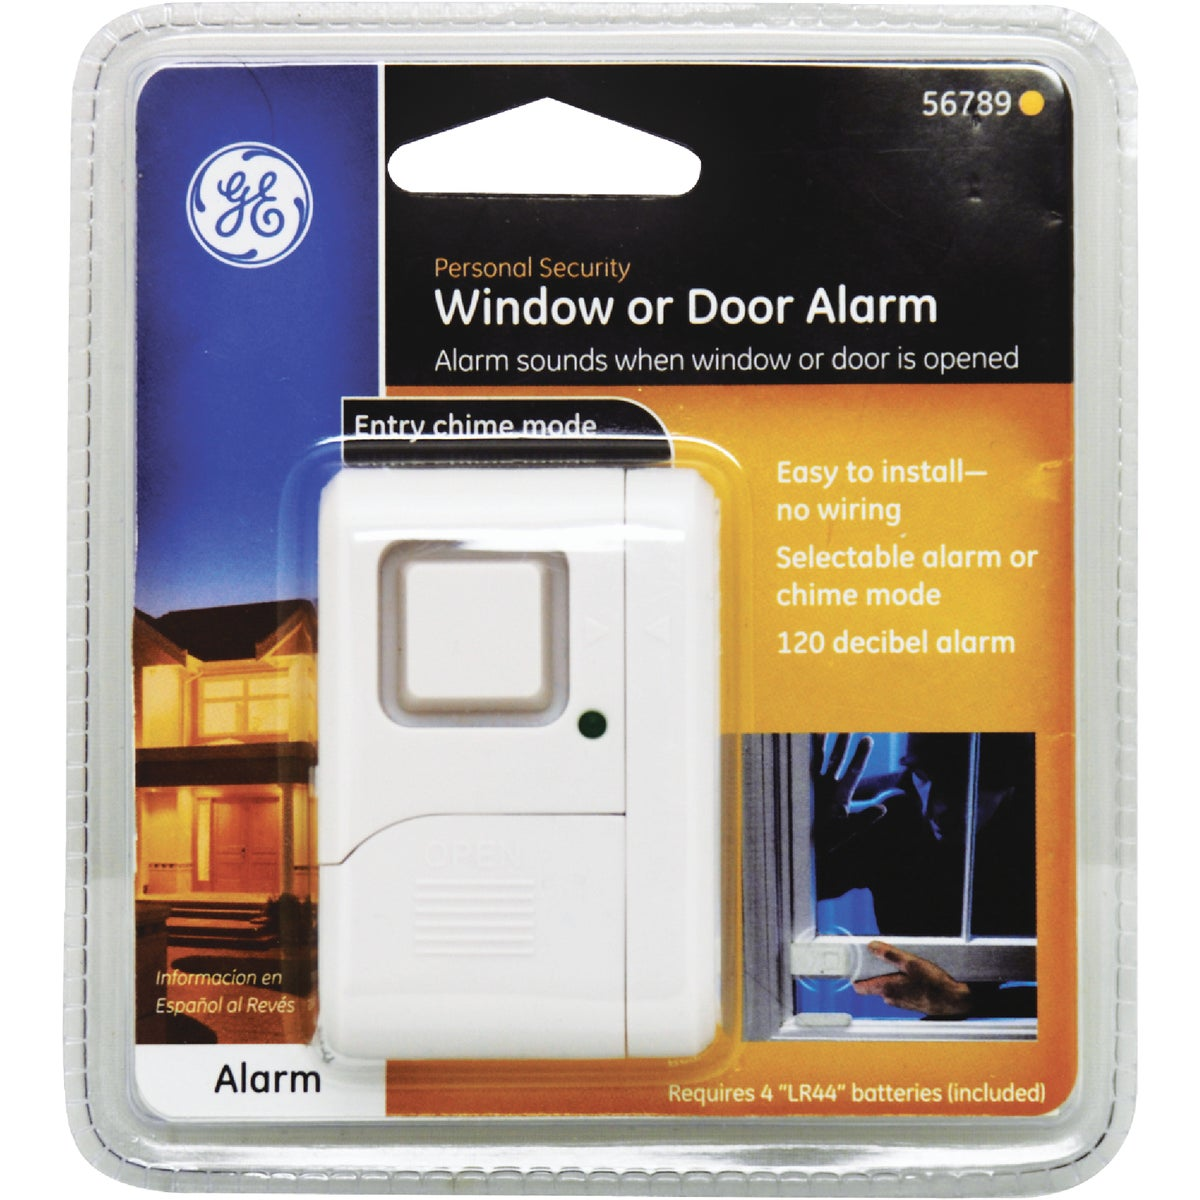 WINDOW ALARM